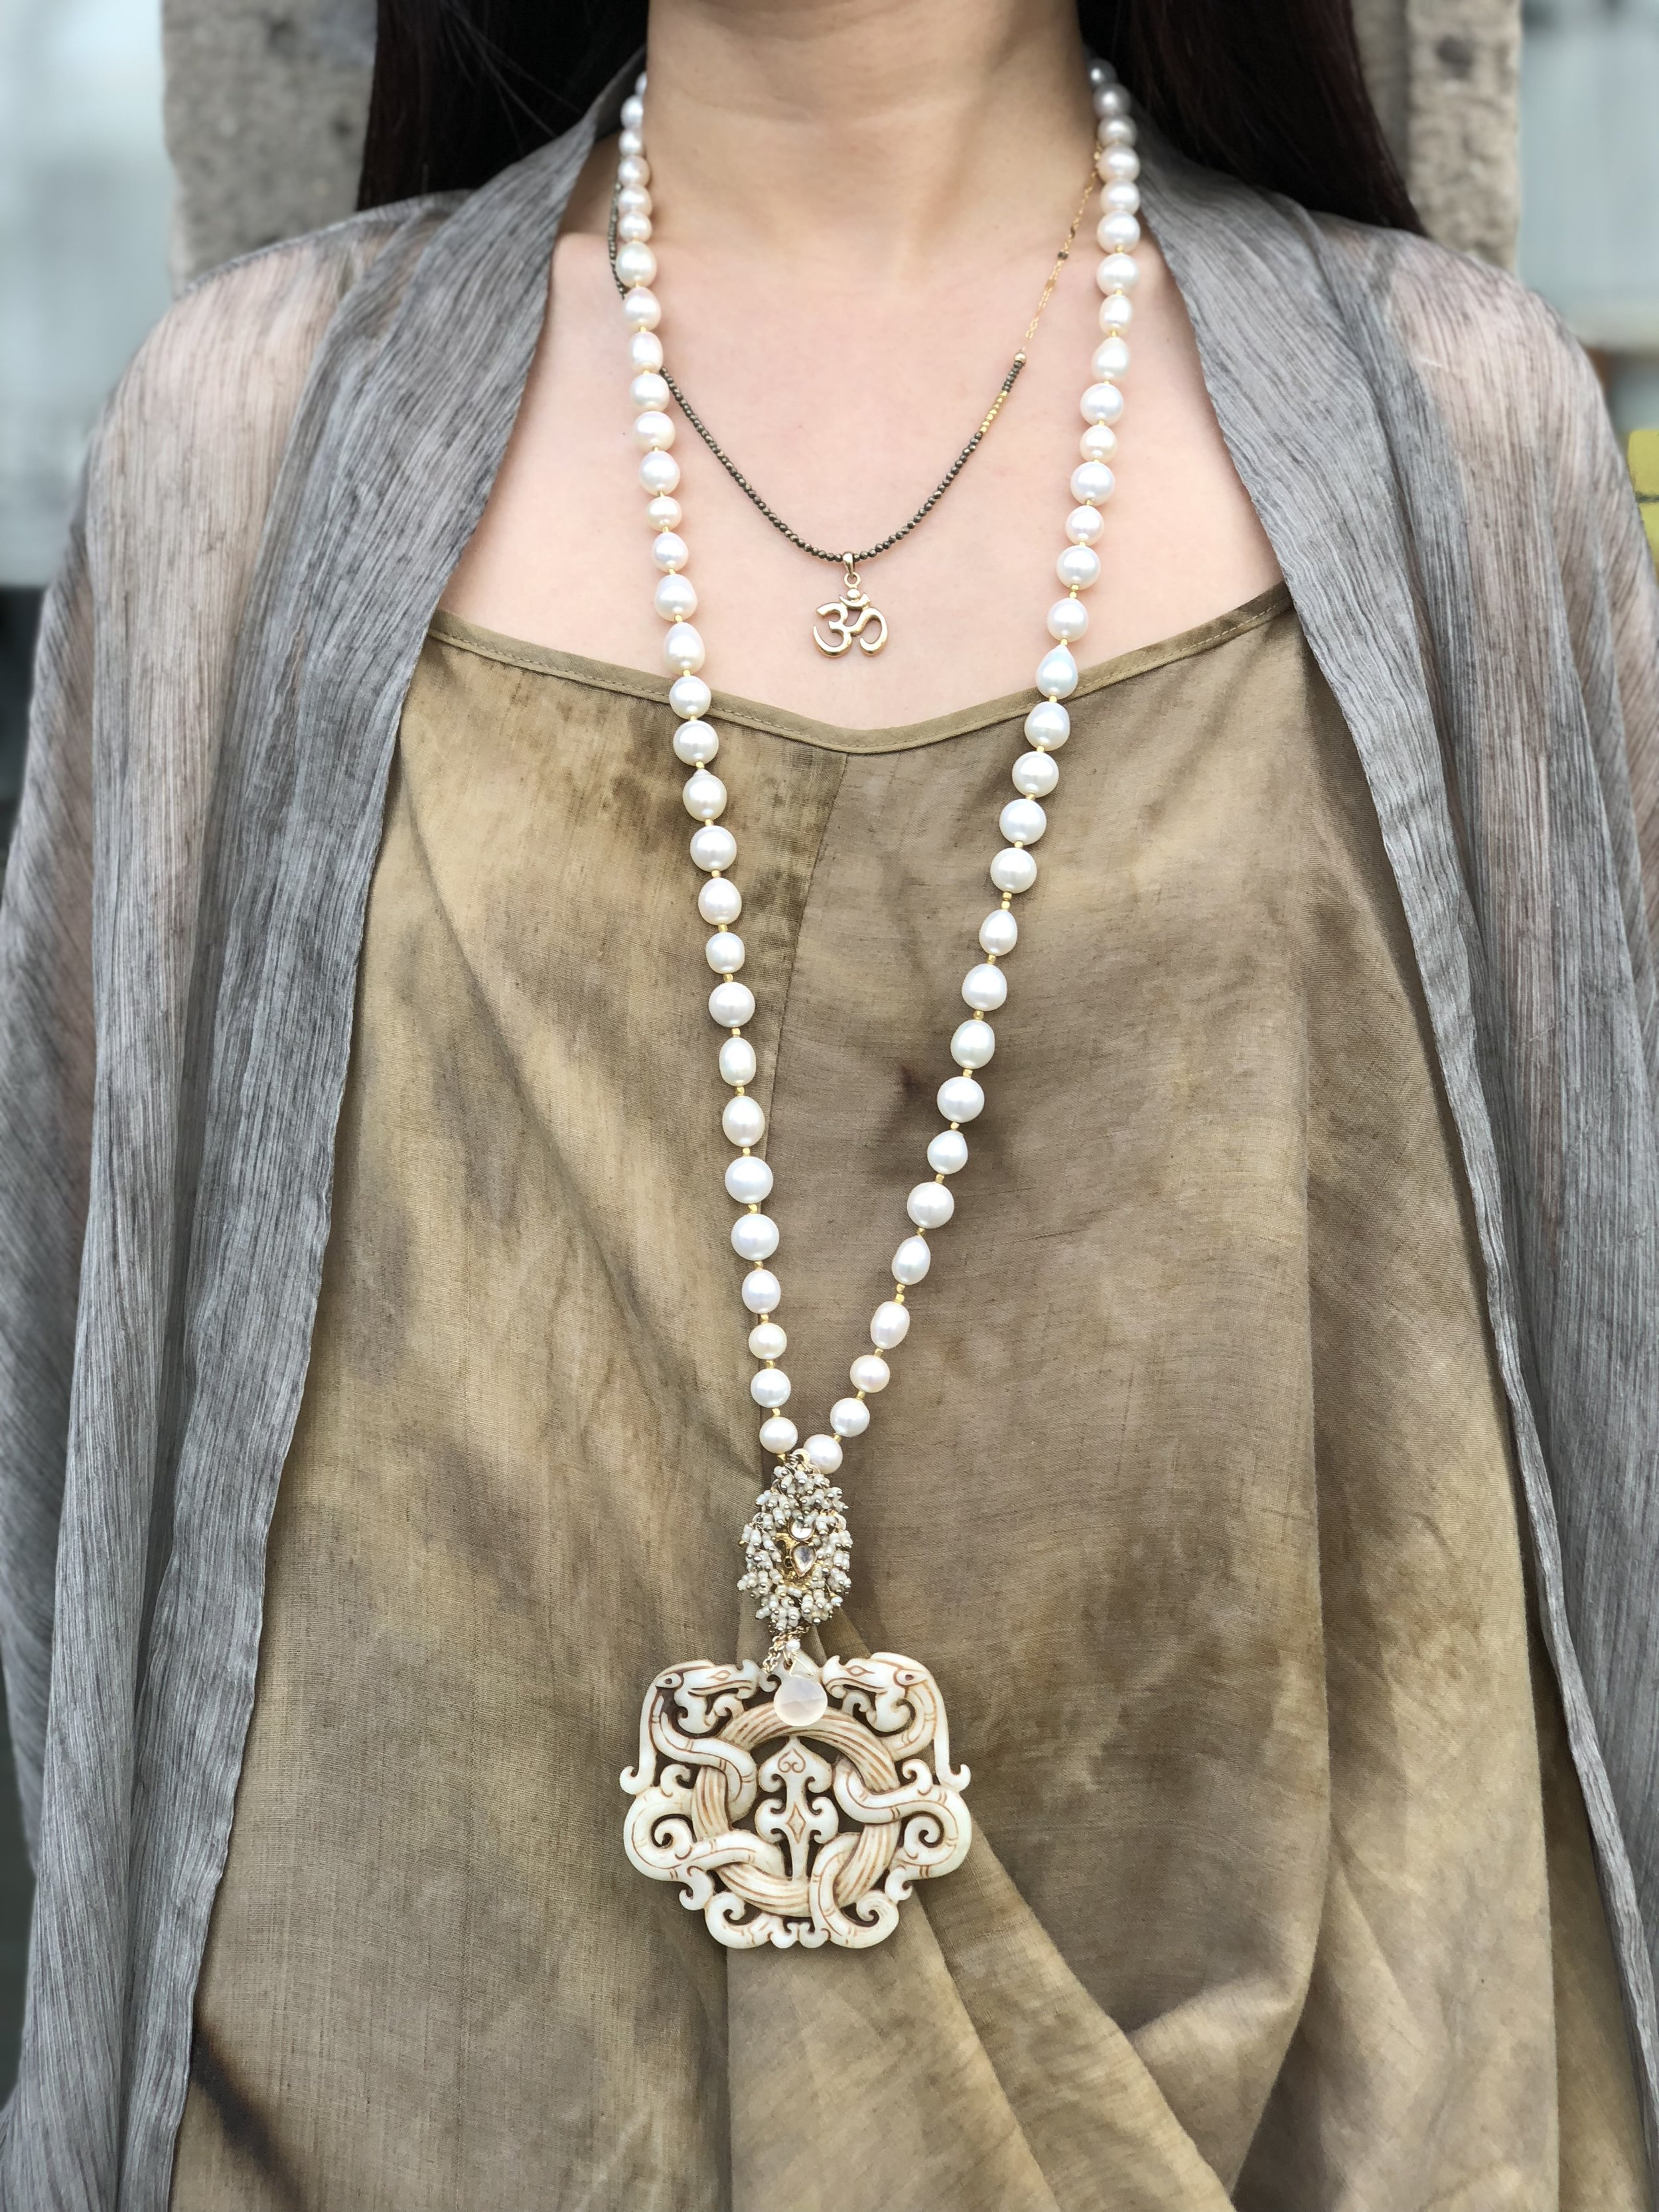 Favorite item #3 - Serious statement necklace - by our very own Swede dream - Liselott